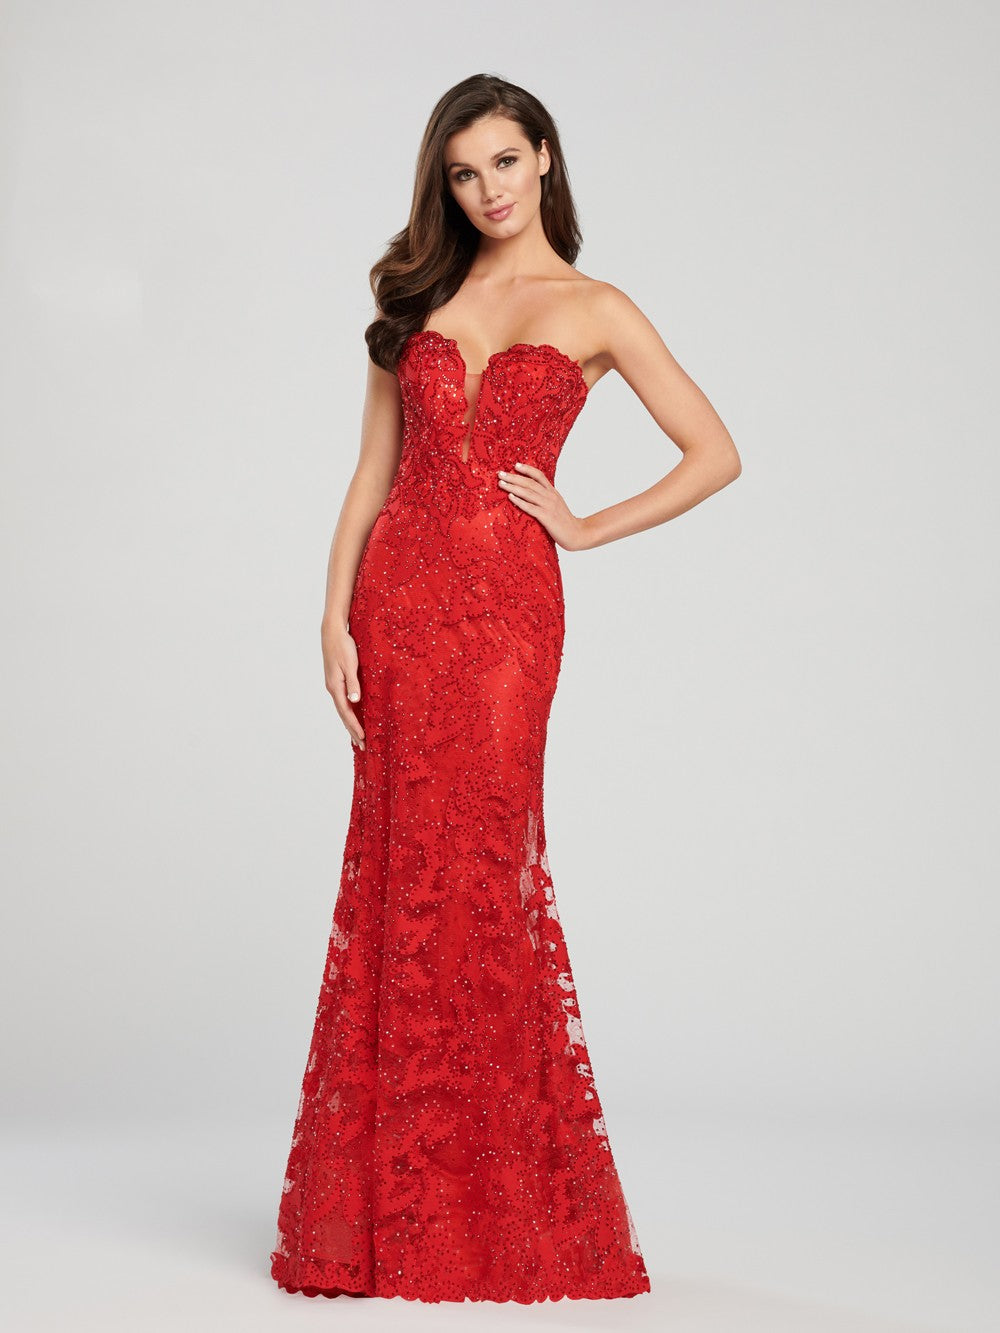 4f00ea83bc4 Ellie Wilde EW119022 Plunging Sweetheart Neck Prom Dress – Dashing ...